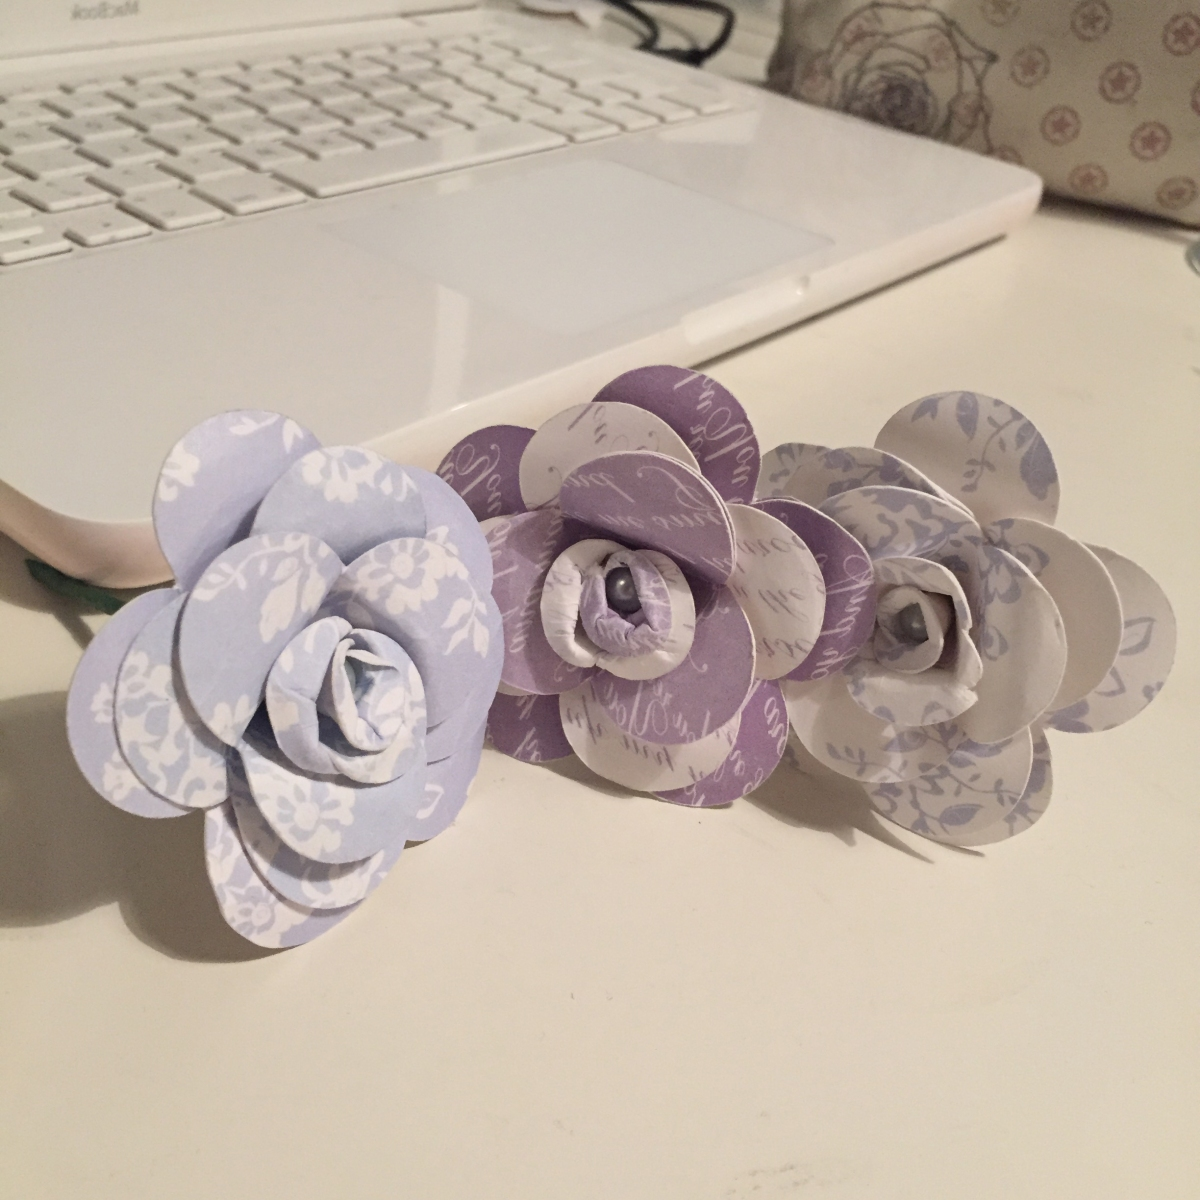 A photograph of three flowers in a row in front of the laptop